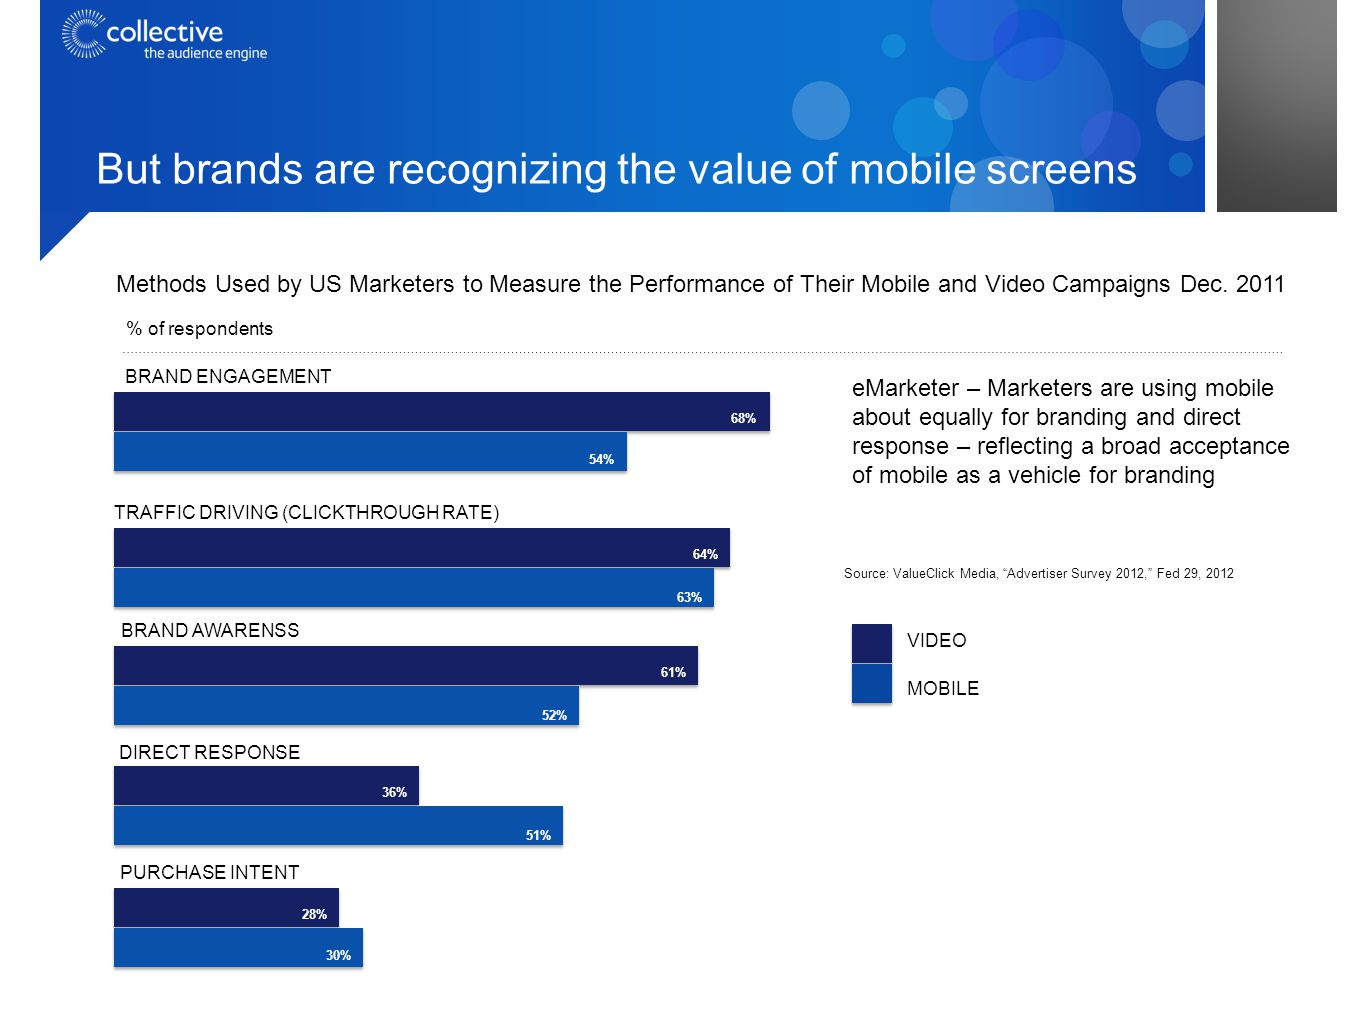 But brands are recognizing the value of mobile screens eMarketer – Marketers are using mobile about equally for branding and direct response – reflecting a broad acceptance of mobile as a vehicle for branding $83 28% 30% PURCHASE INTENT 36% 51% DIRECT RESPONSE 61% 52% BRAND AWARENSS 64% 63% TRAFFIC DRIVING (CLICKTHROUGH RATE) 68% 54% BRAND ENGAGEMENT Source: ValueClick Media, Advertiser Survey 2012, Fed 29, 2012 Methods Used by US Marketers to Measure the Performance of Their Mobile and Video Campaigns Dec.